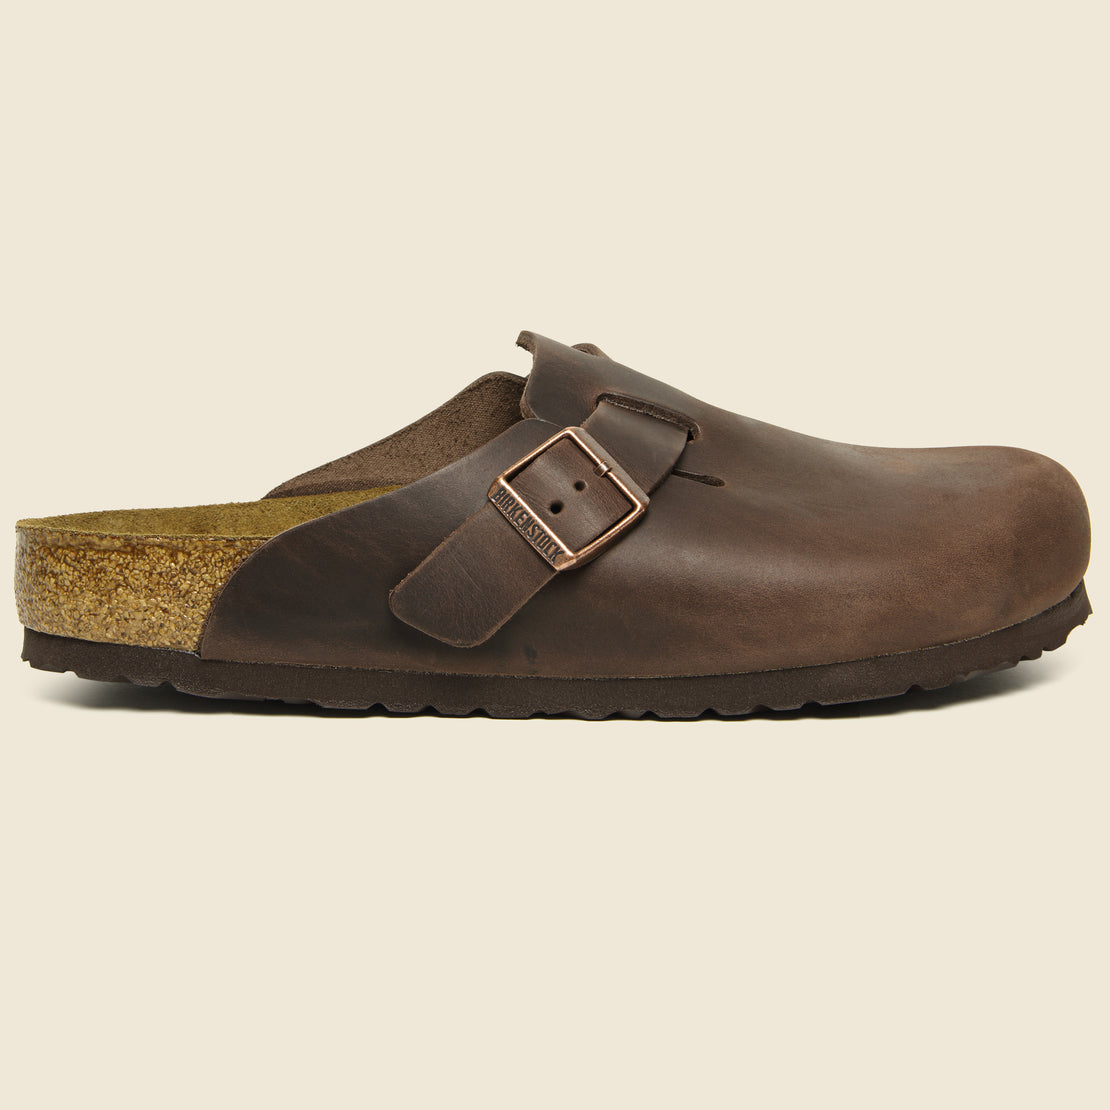 Birkenstock Boston Oiled Leather Clog - Habana